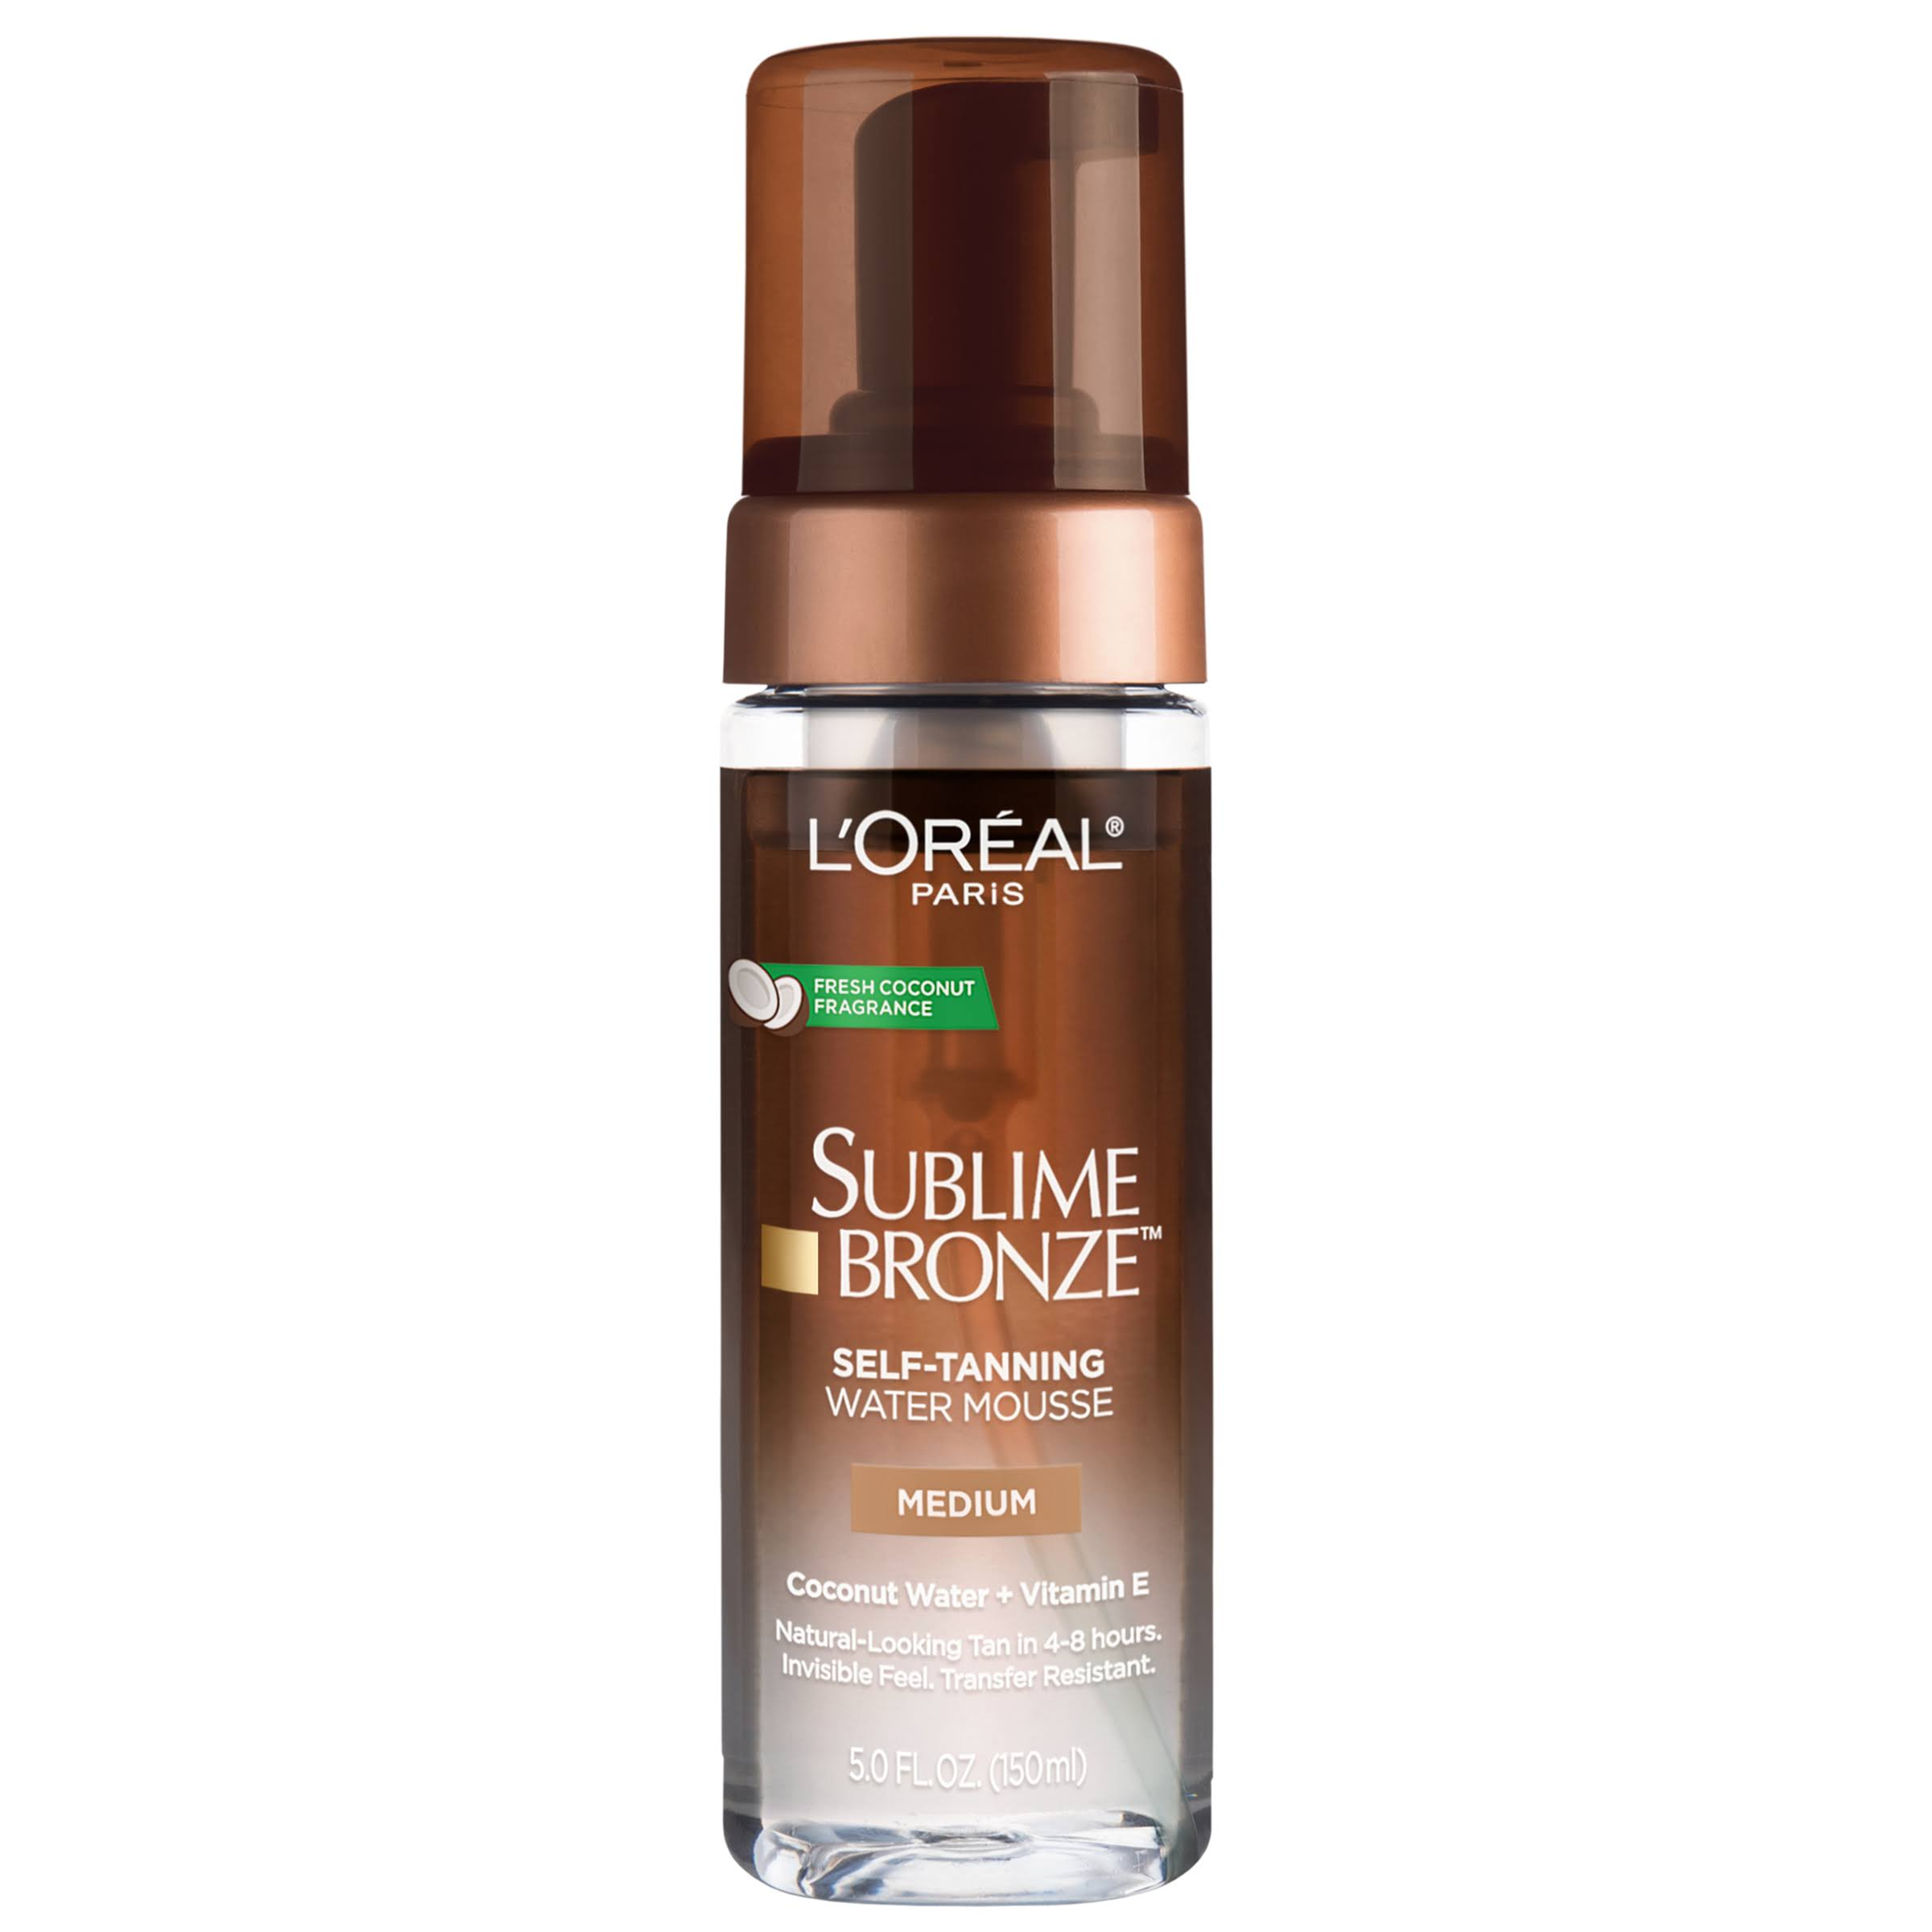 L Oreal Paris Sublime Bronze Hydrating Self Tanning Water Mousse - Medium, 5oz